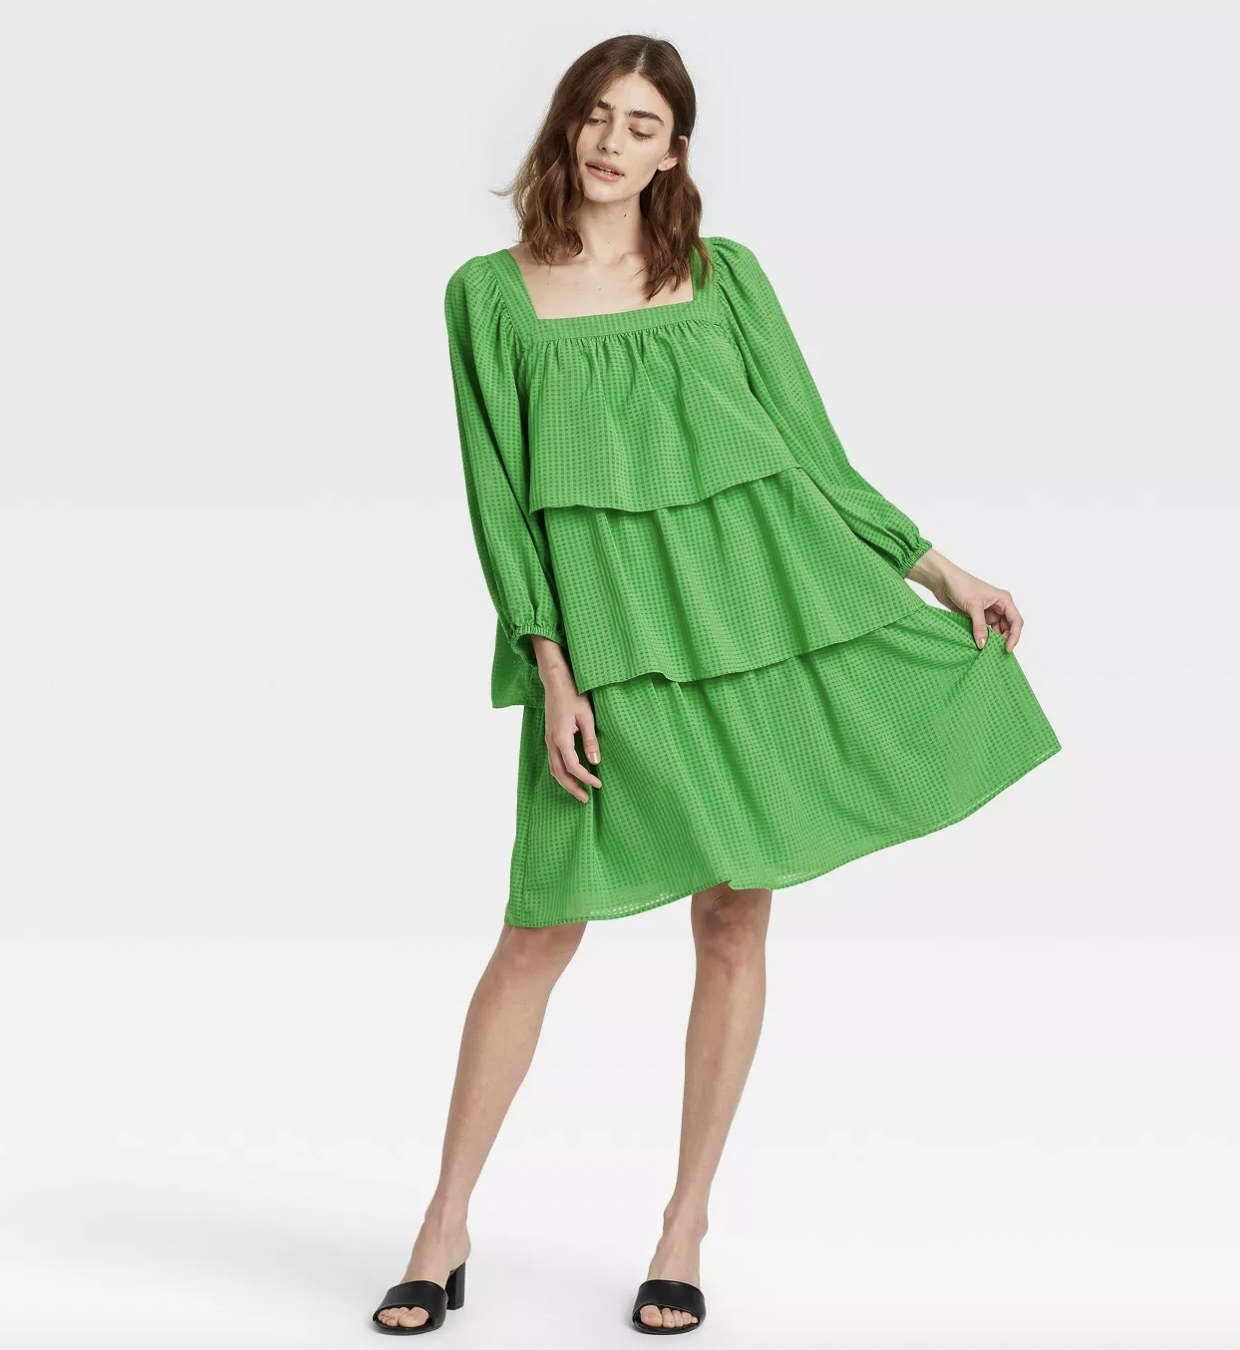 A woman wearing a green ruffle dress with black sandals